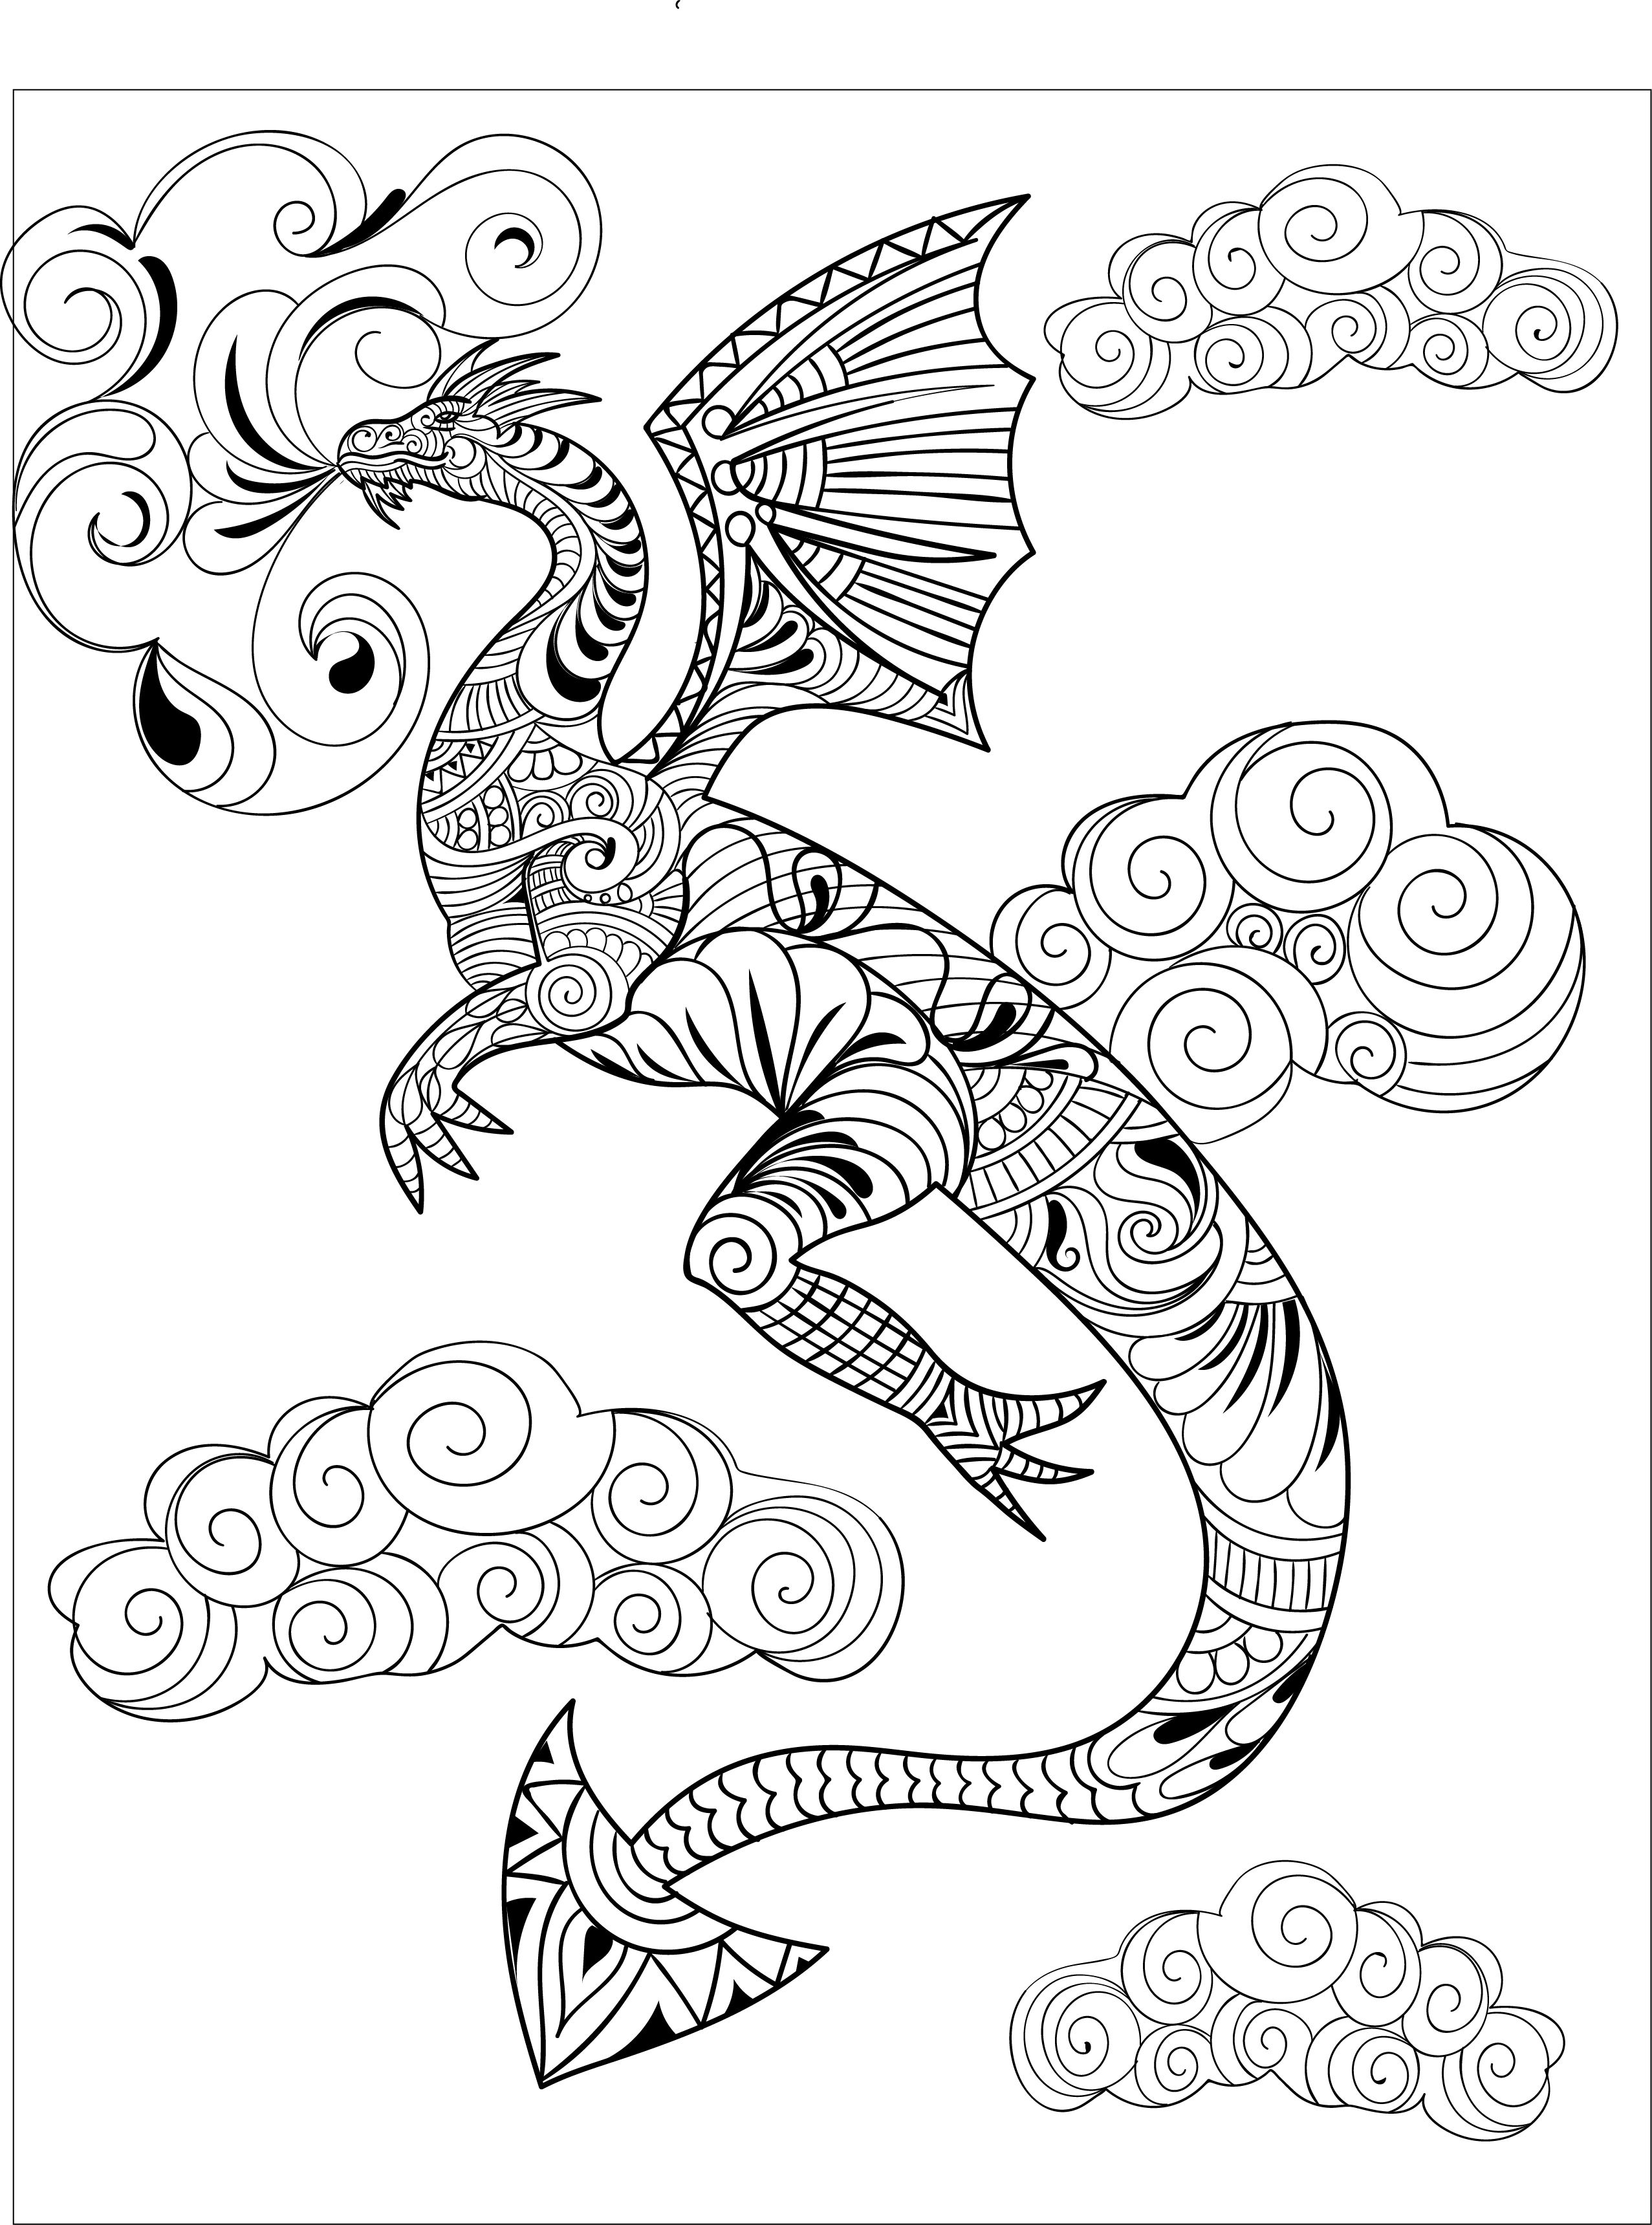 A dragon from one of Creatively Calm Studios\' Adult Coloring Books ...